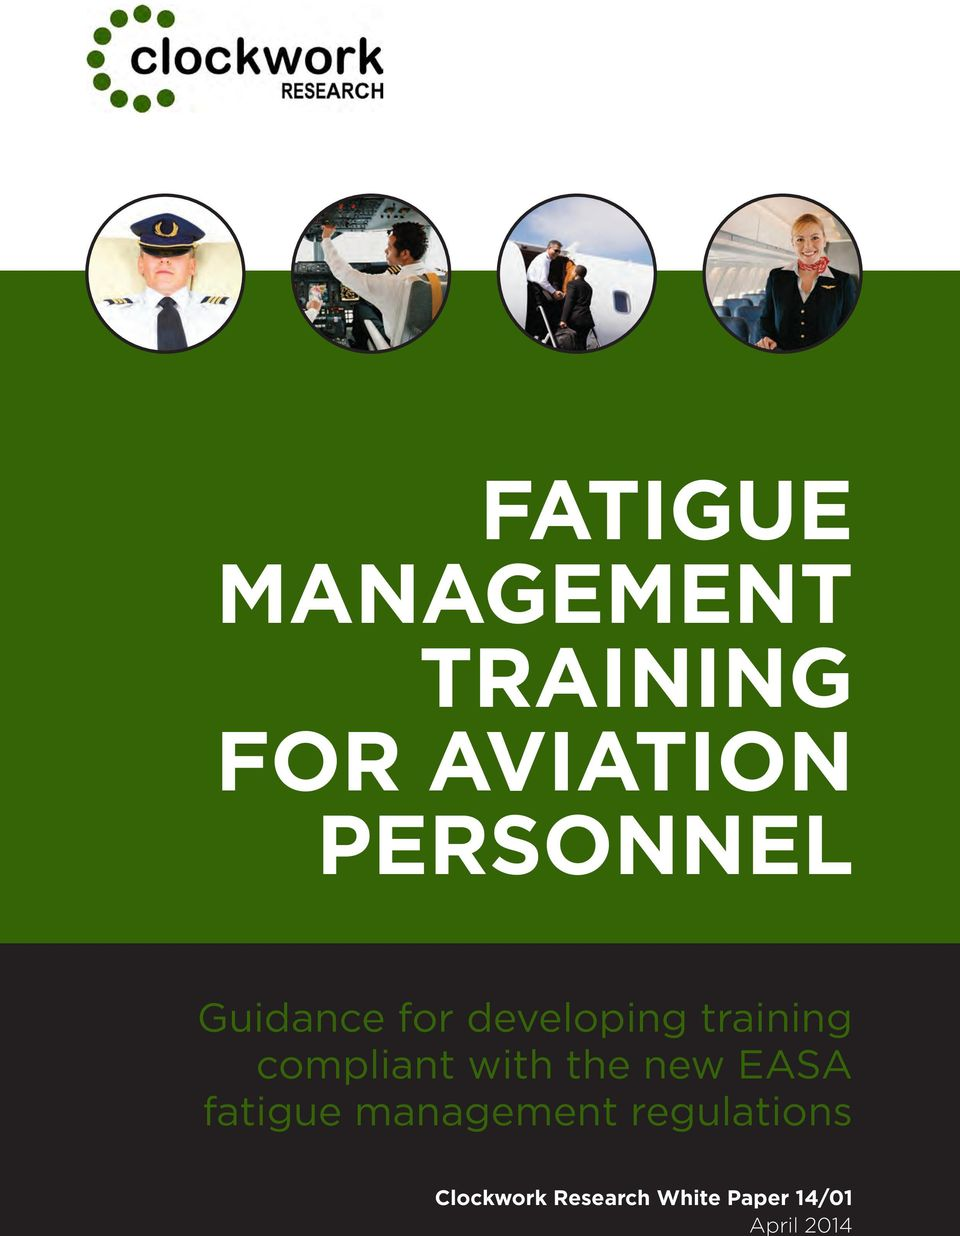 compliant with the new EASA fatigue management